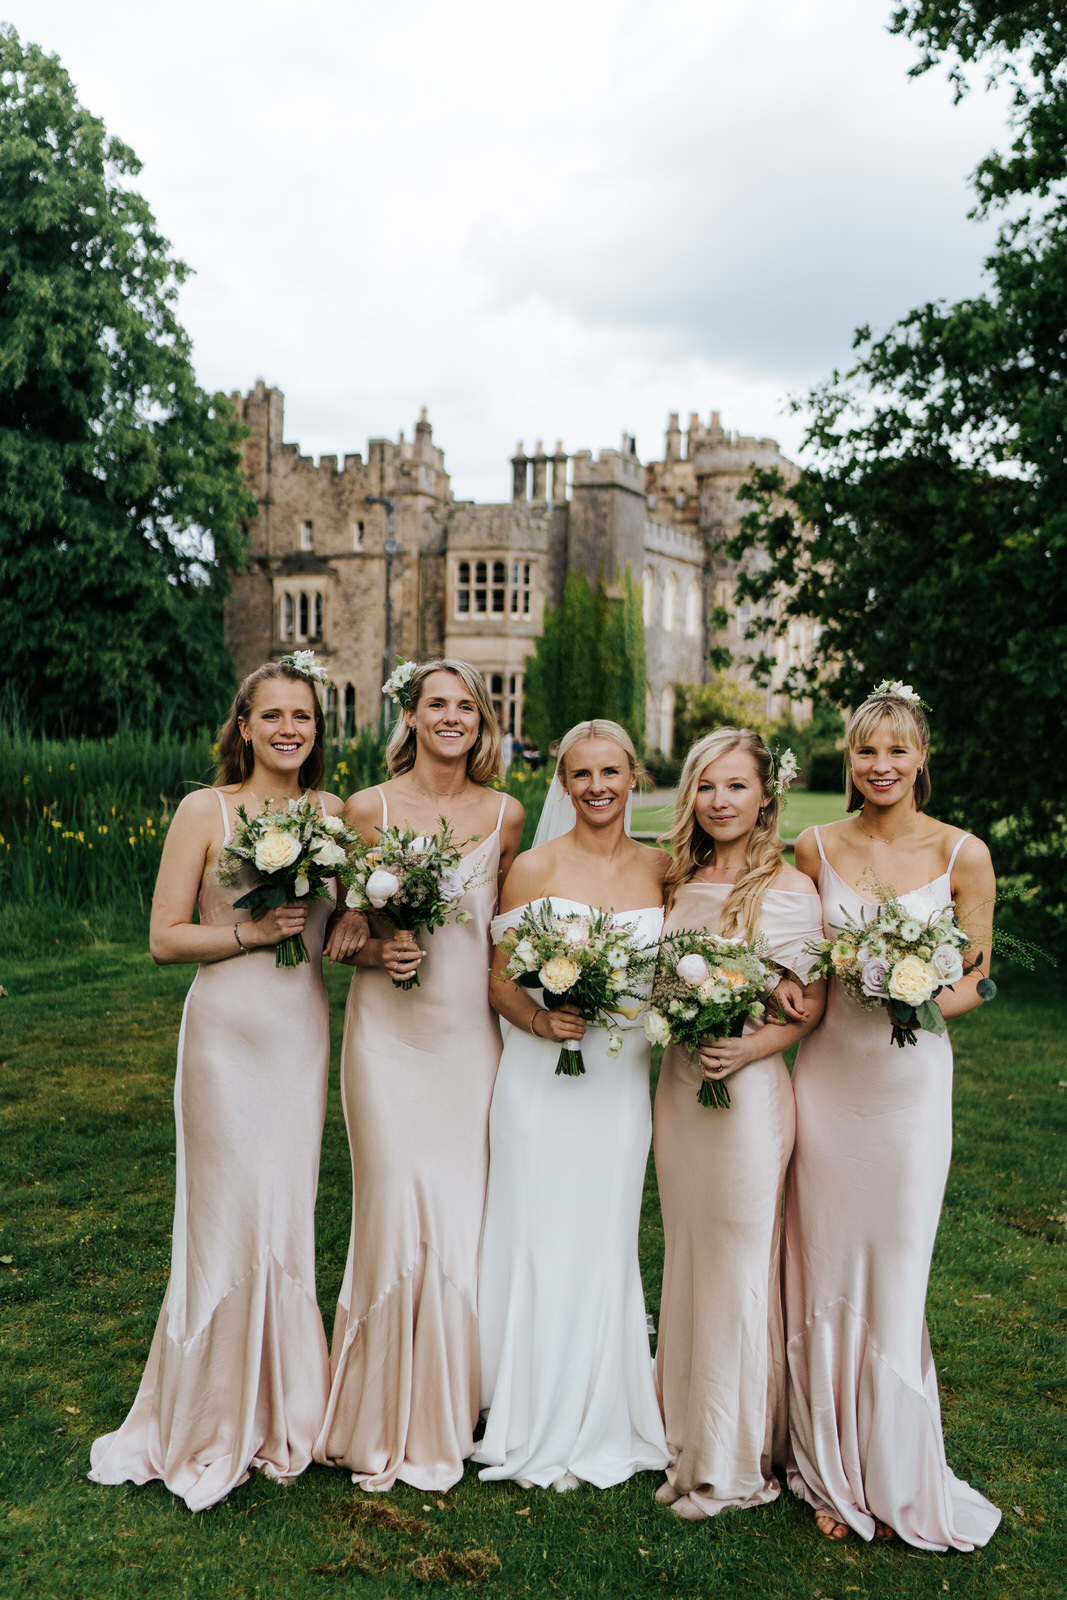 Posed photograph of bridesmaids and bride holding bouquets with Hawarden Castle in the background